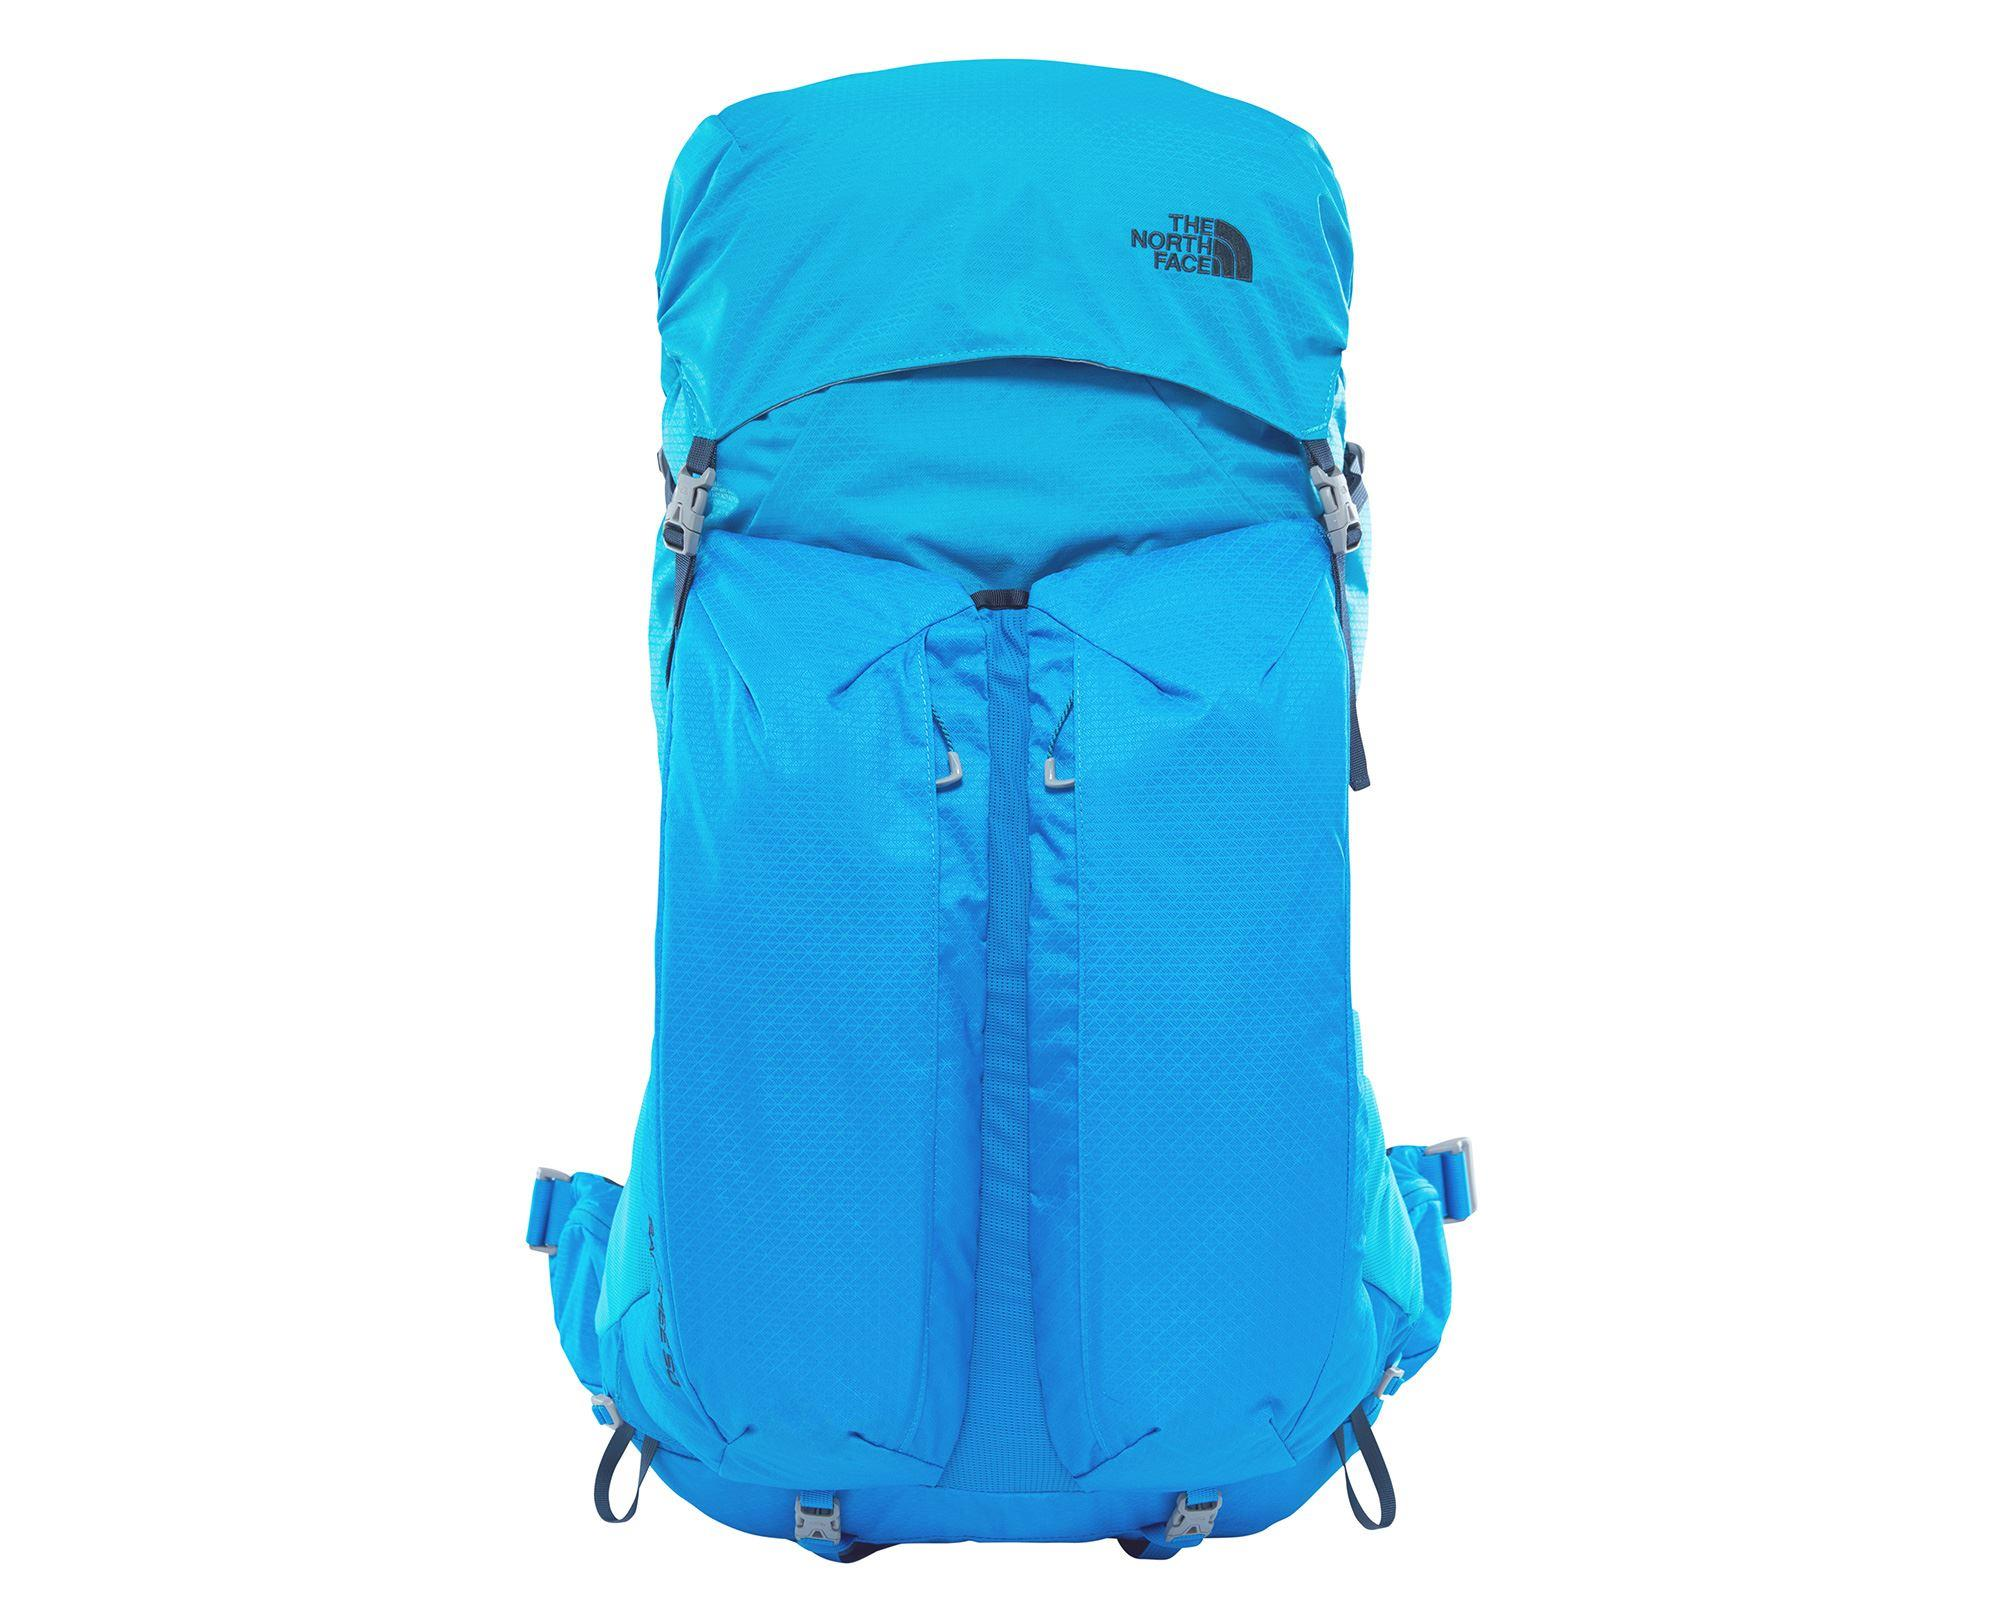 The Northface Banchee 50 Çanta T92Sclreg